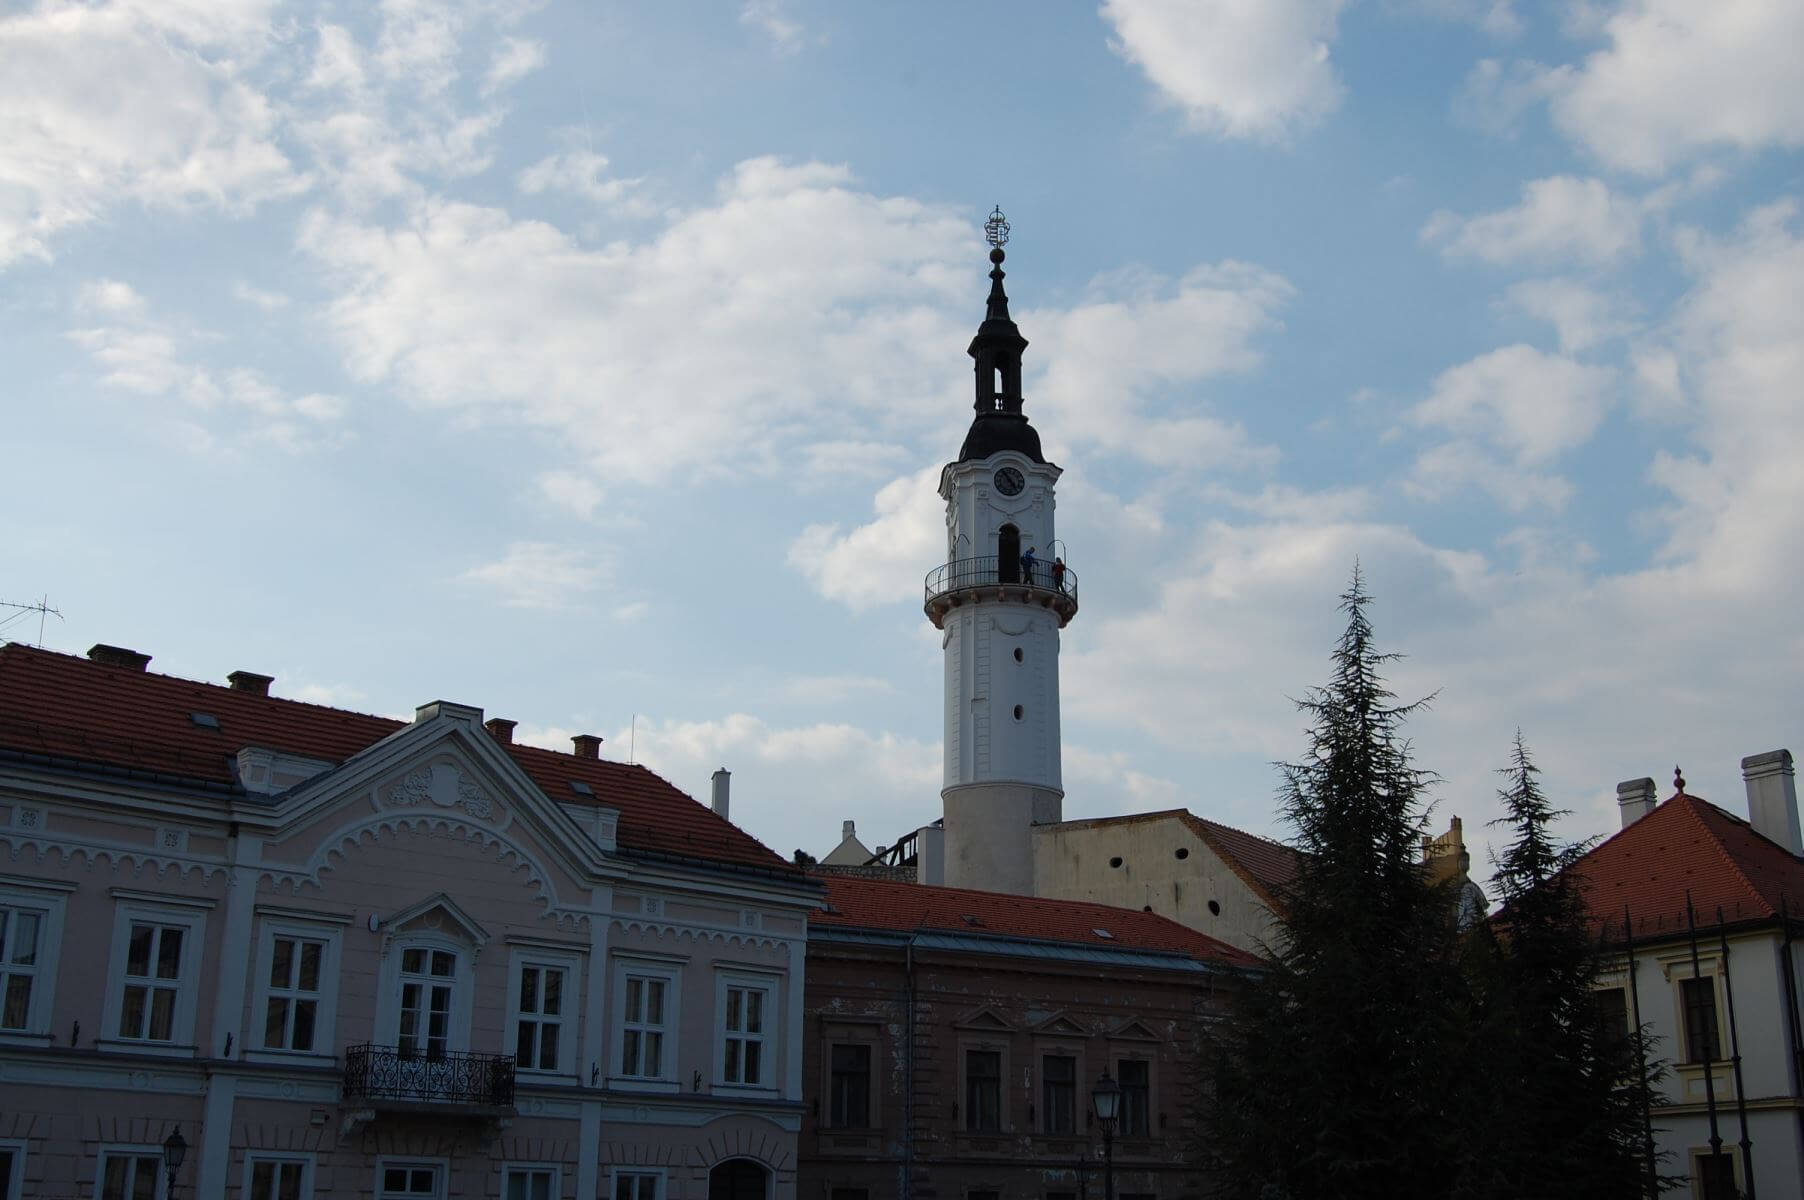 Old Tower in City Center